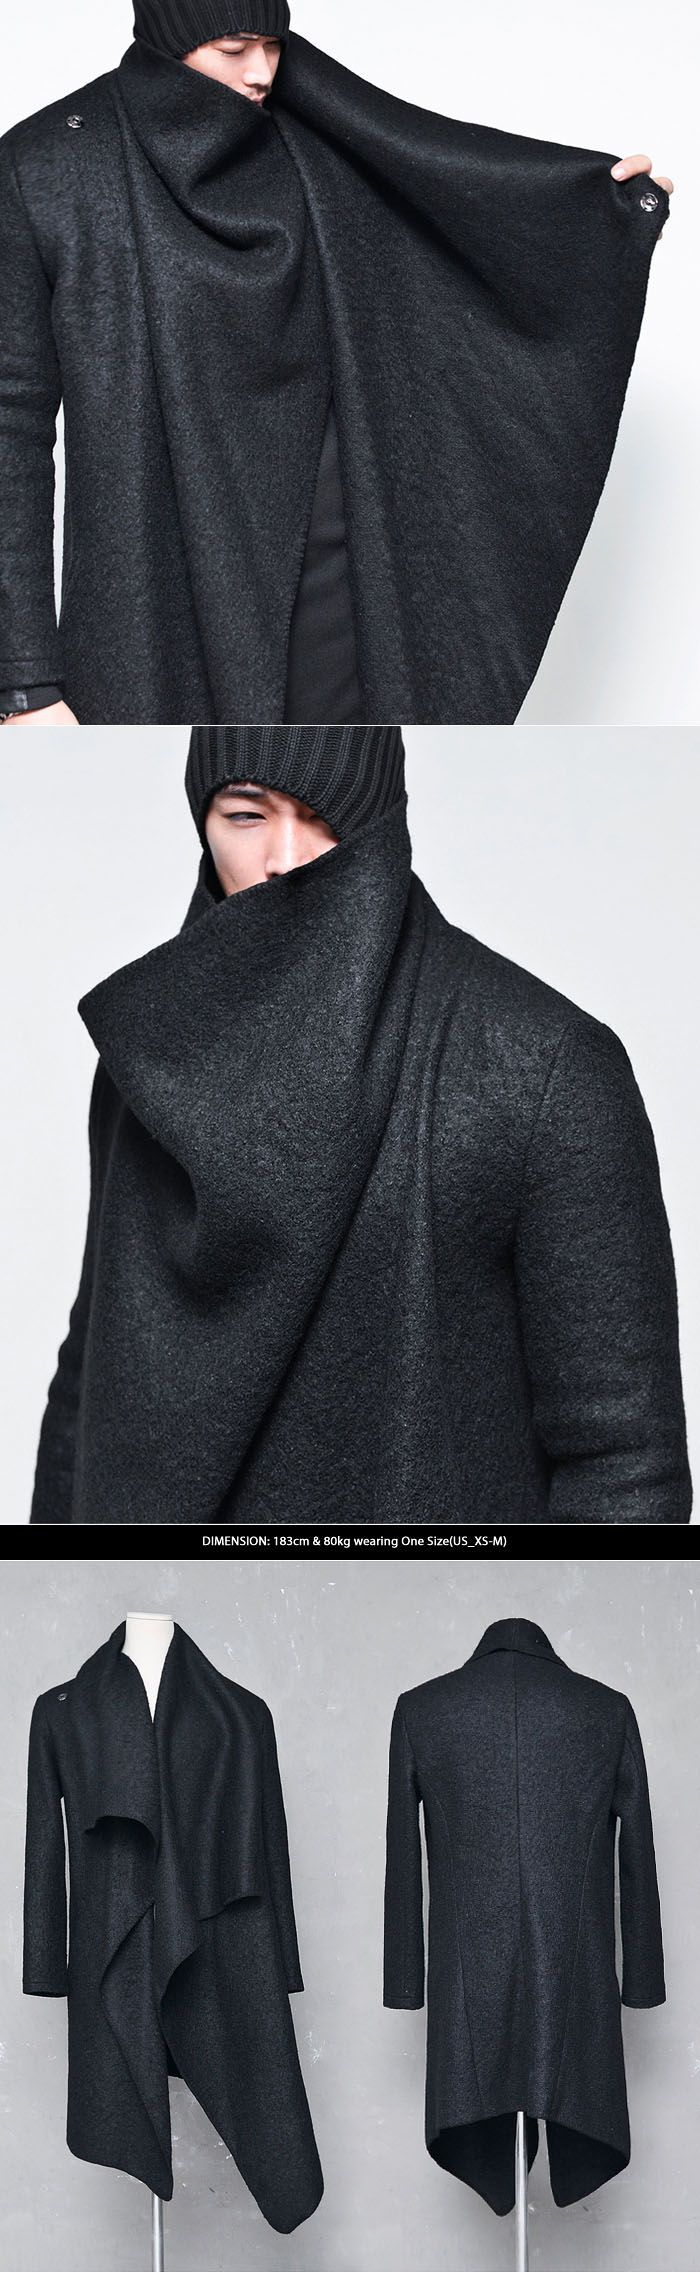 Outerwear :: Avant-garde Unbalance Turtle Drape-Coat 67 - Mens Fashion Clothing For An Attractive Guy Look - mens branded clothing, in style mens clothing, discount mens clothing online shopping